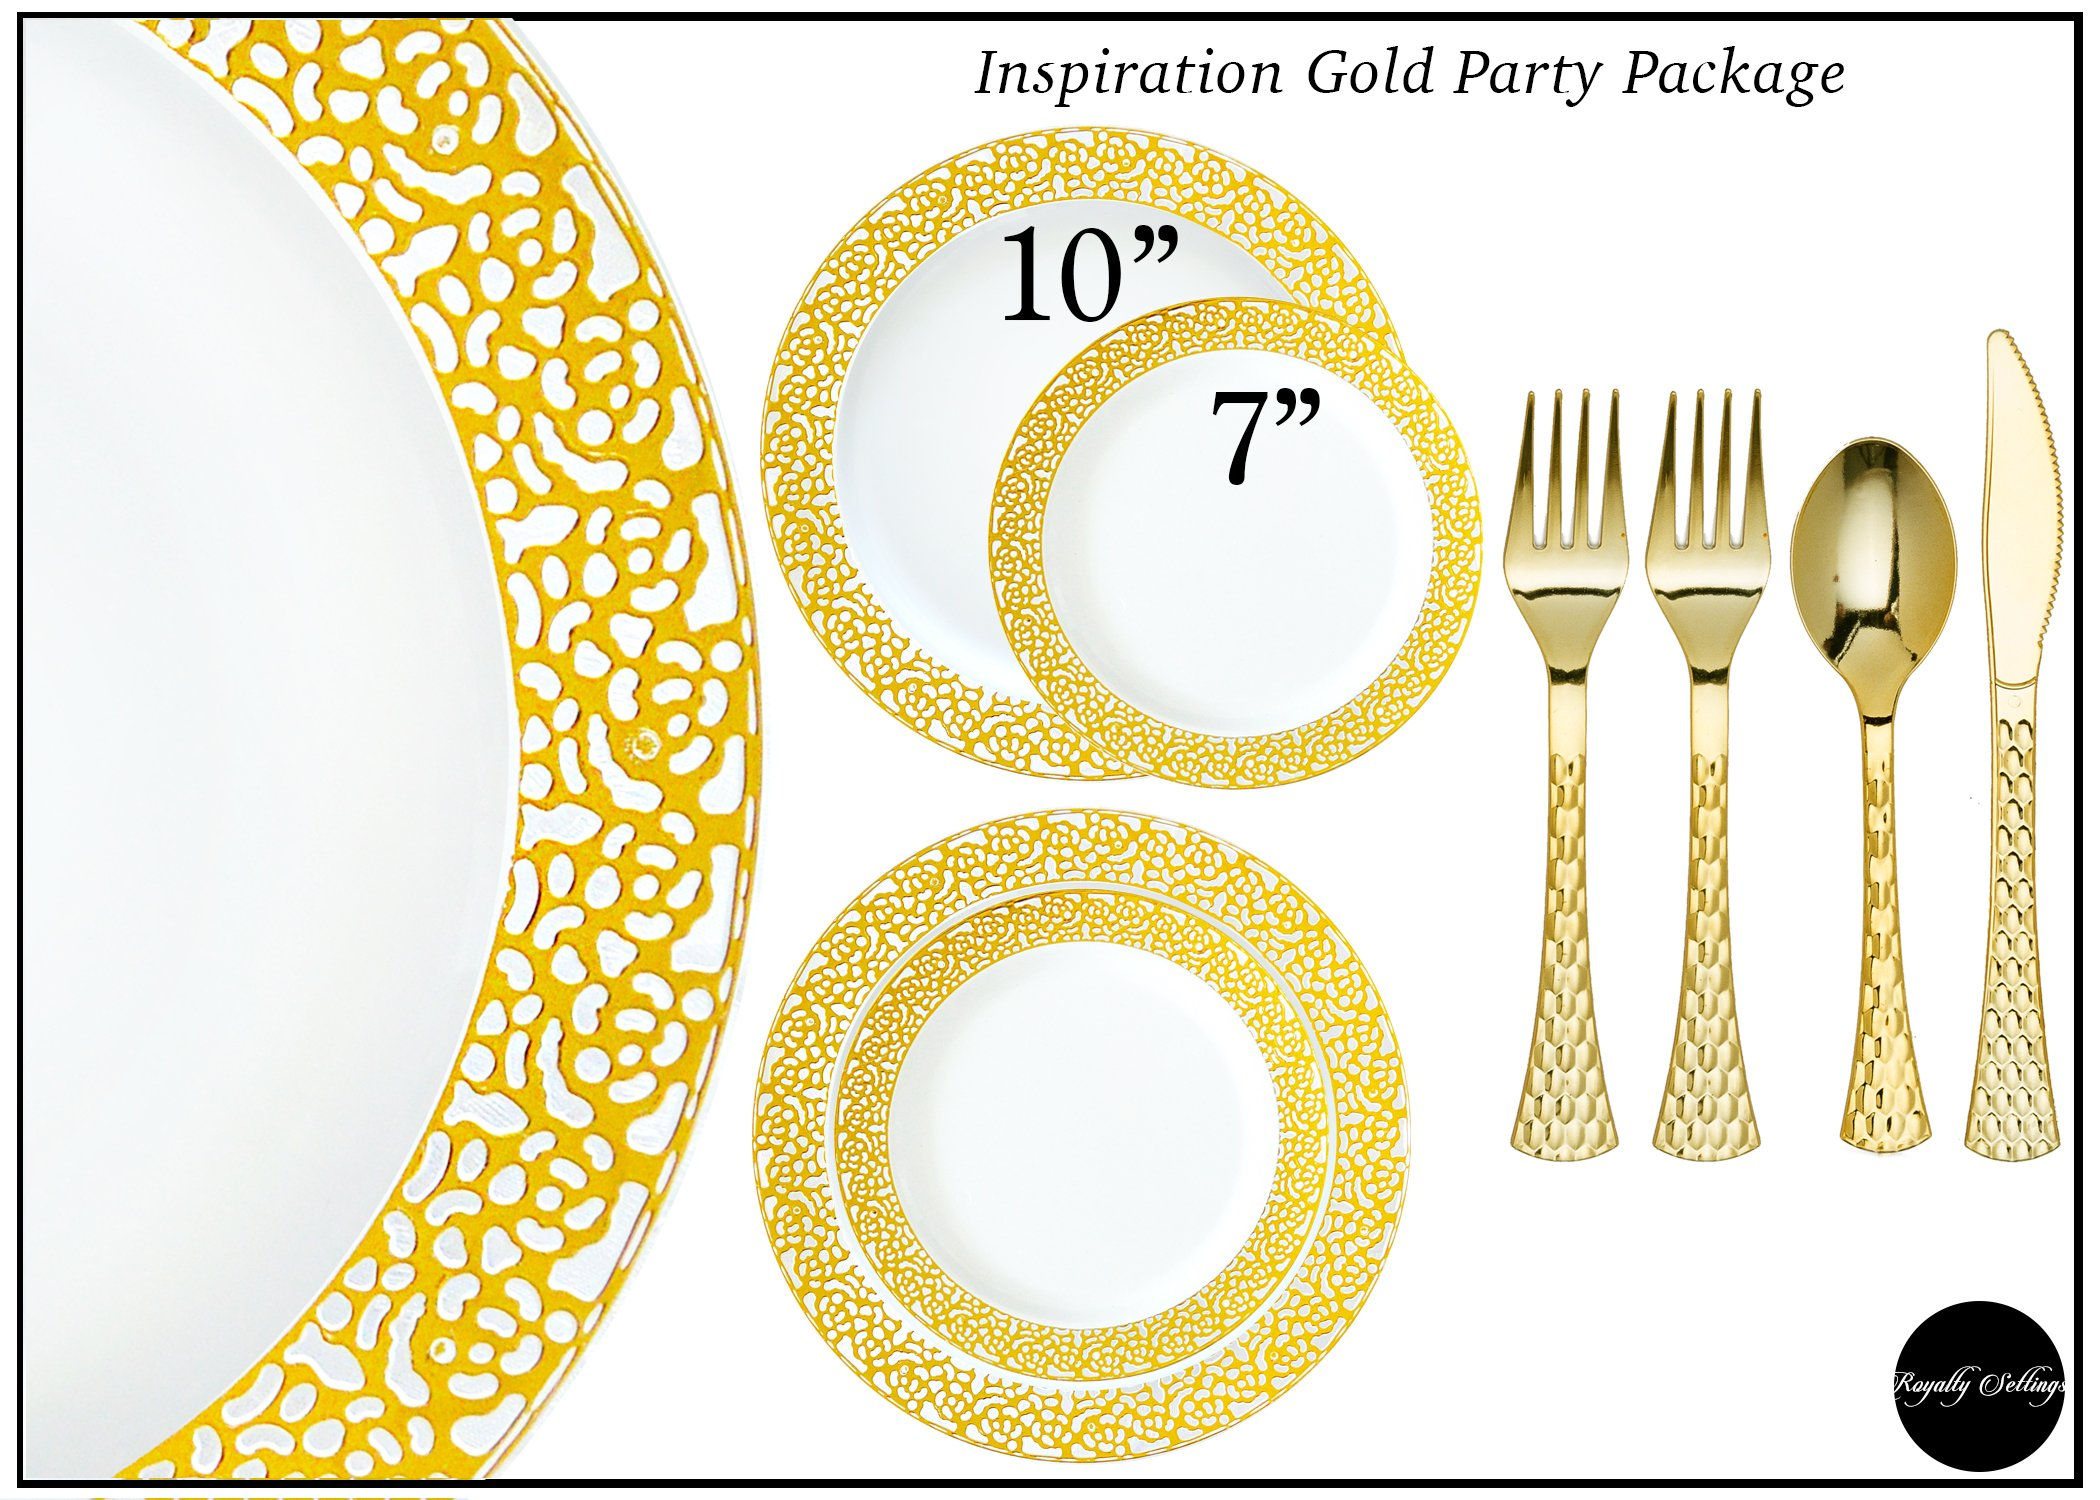 Royalty Settings Gold Inspiration Collection Plastic Plates and Cutlery Party Package for 120 Persons, Includes 120 Dinner Plates, 120 Salad Plates, 240 Forks, 120 Knives, 120 Spoons